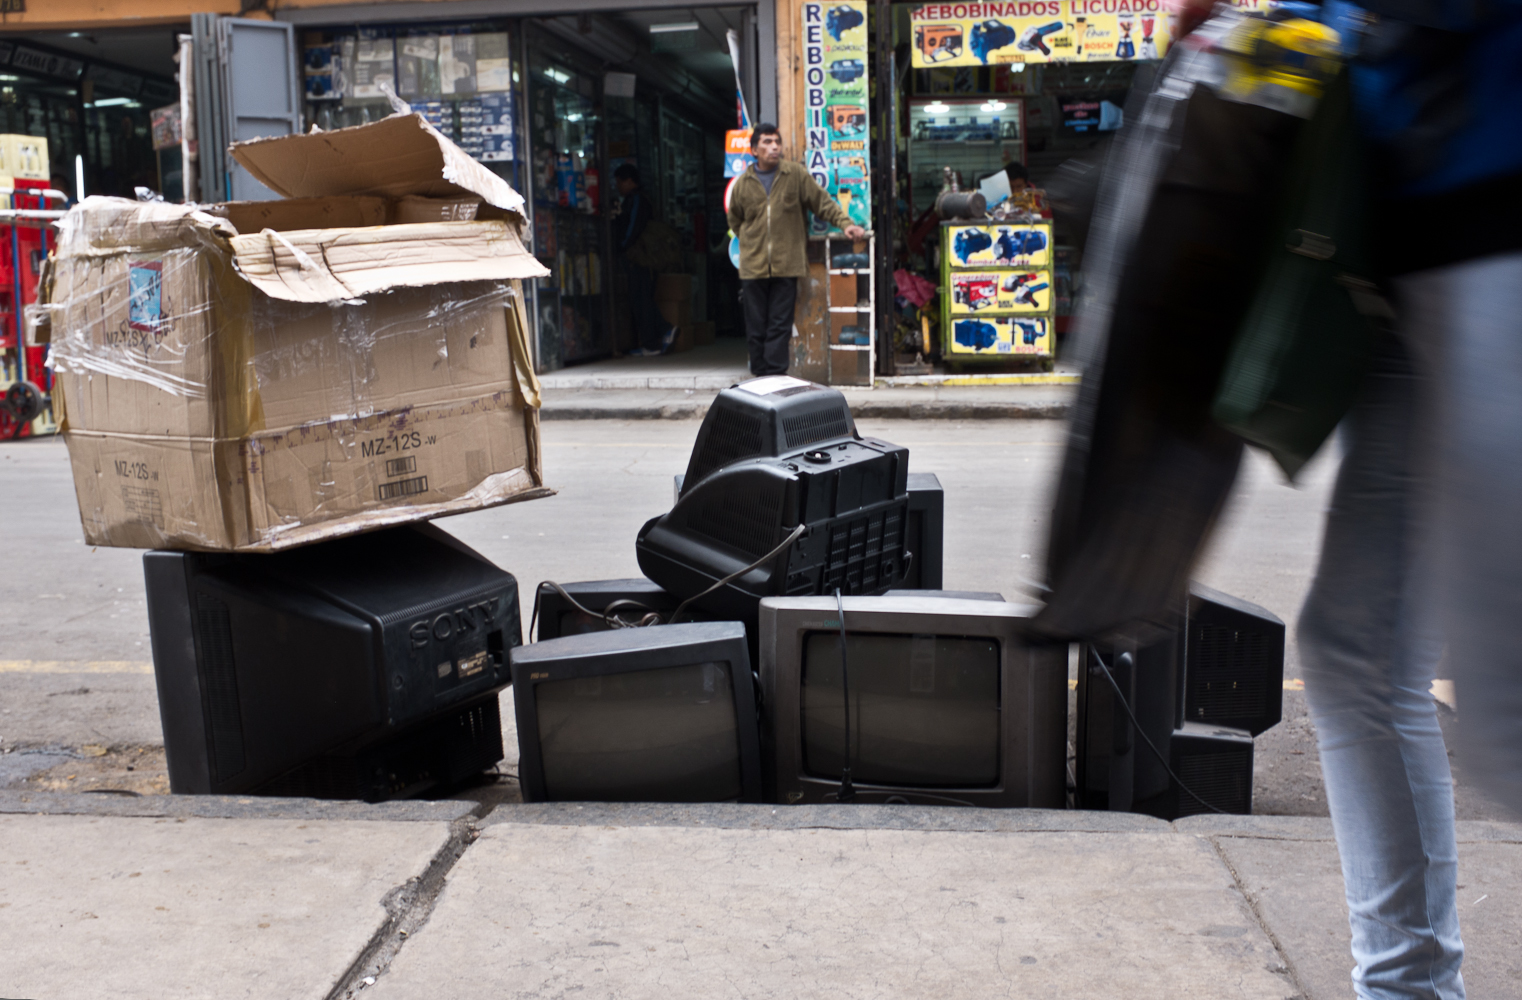 Cathode Ray Tube (CRT) televisions being prepared for repair and resale, just off Leticia street in central Lima.